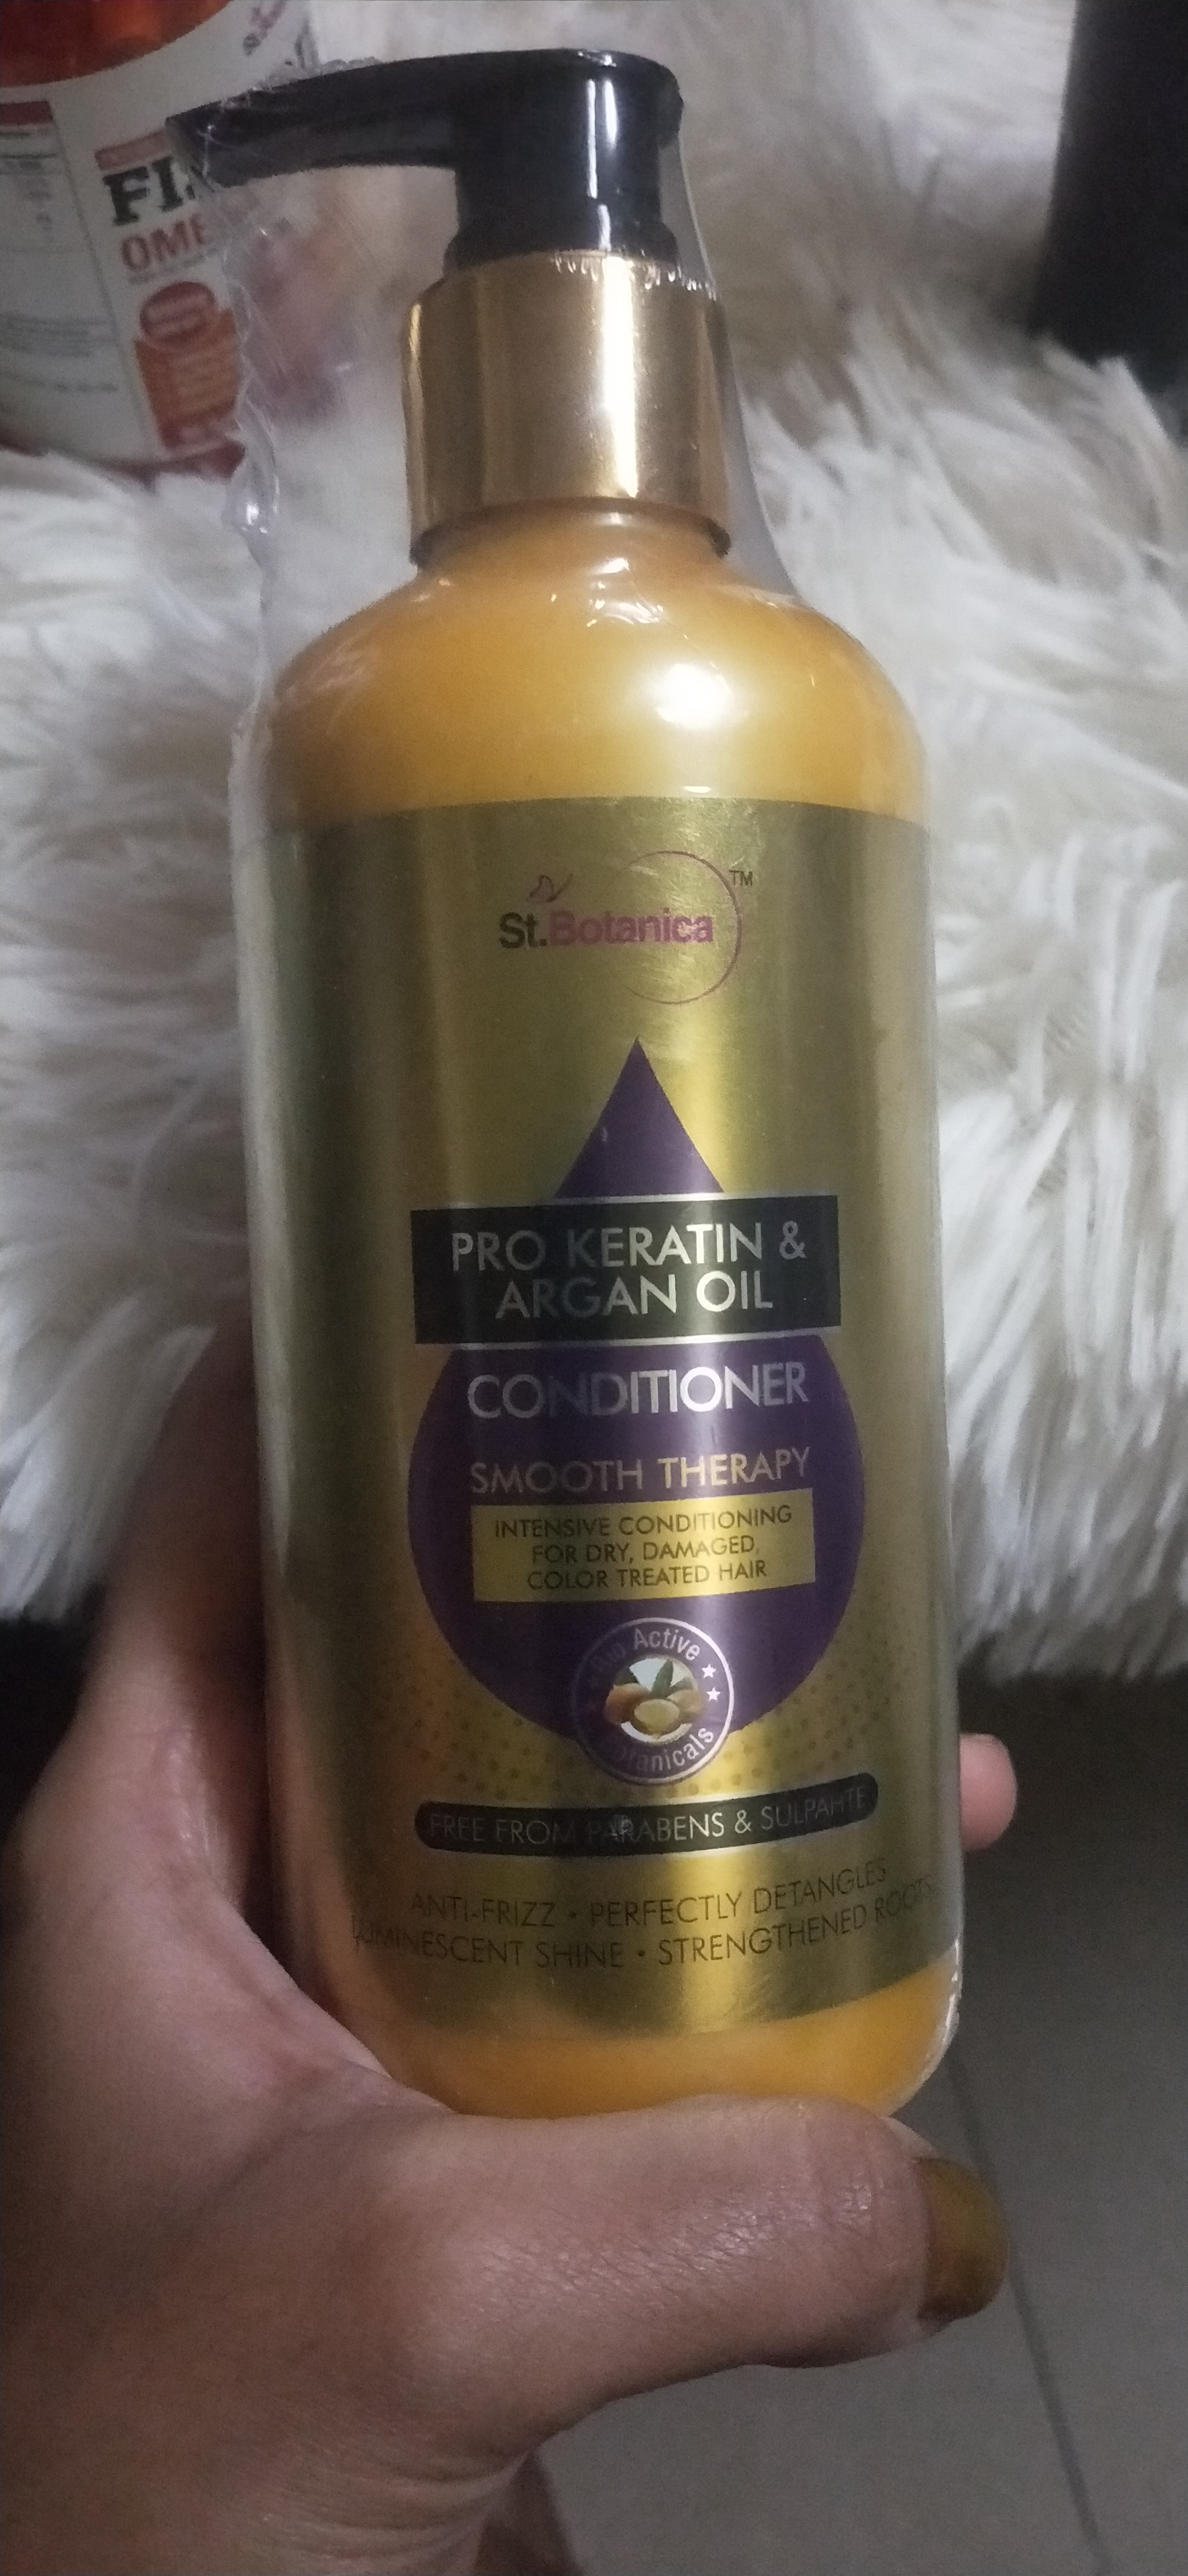 StBotanica Pro Keratin & Argan Oil Conditioner-Great product-By ishitas